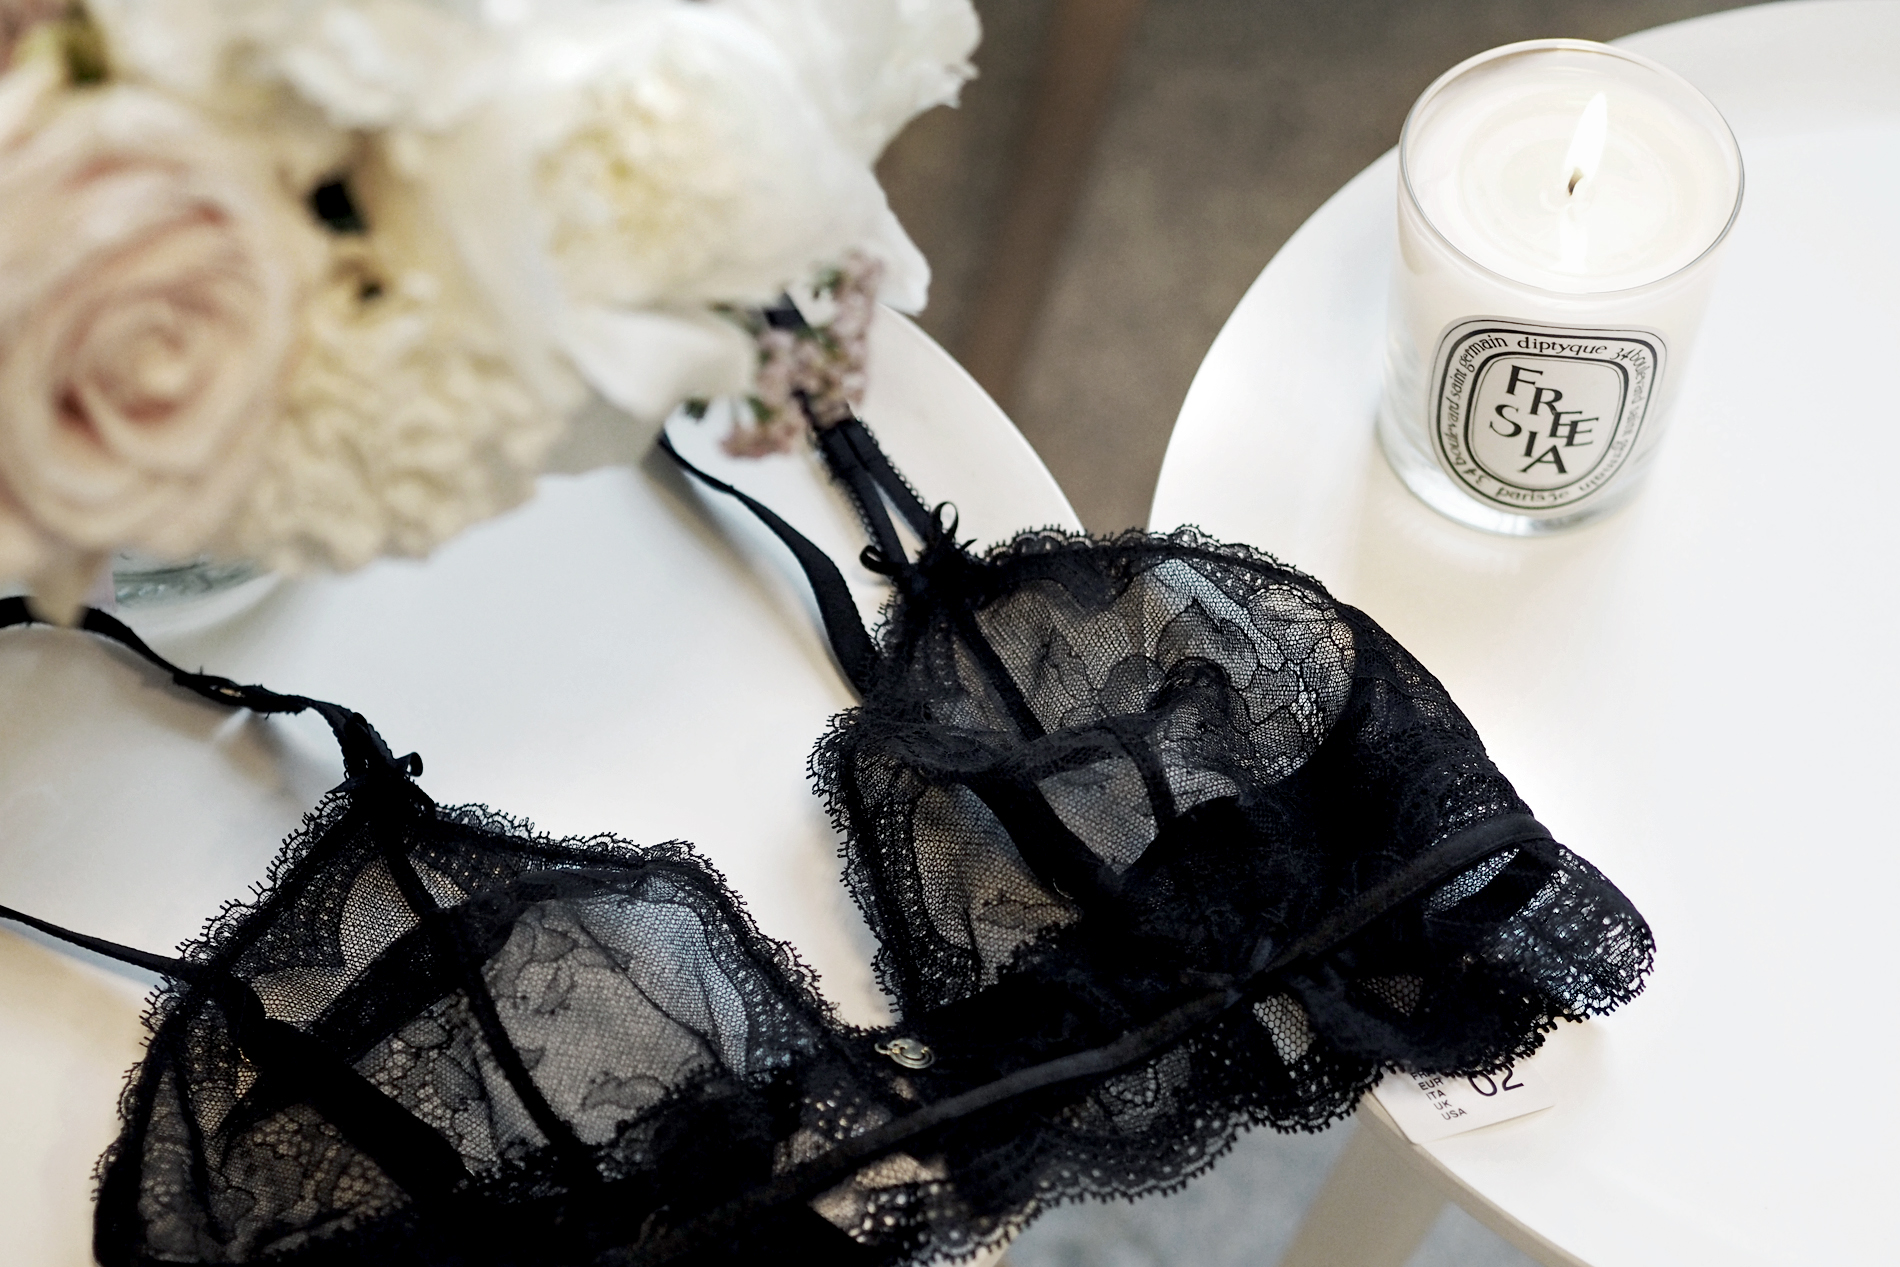 chantelle lingerie lace bra blogger style sexy dessous luxury black underwear bra roses chic paris parisienne french elegante cats & dogs fashion blog ricarda schernus modeblogger 1